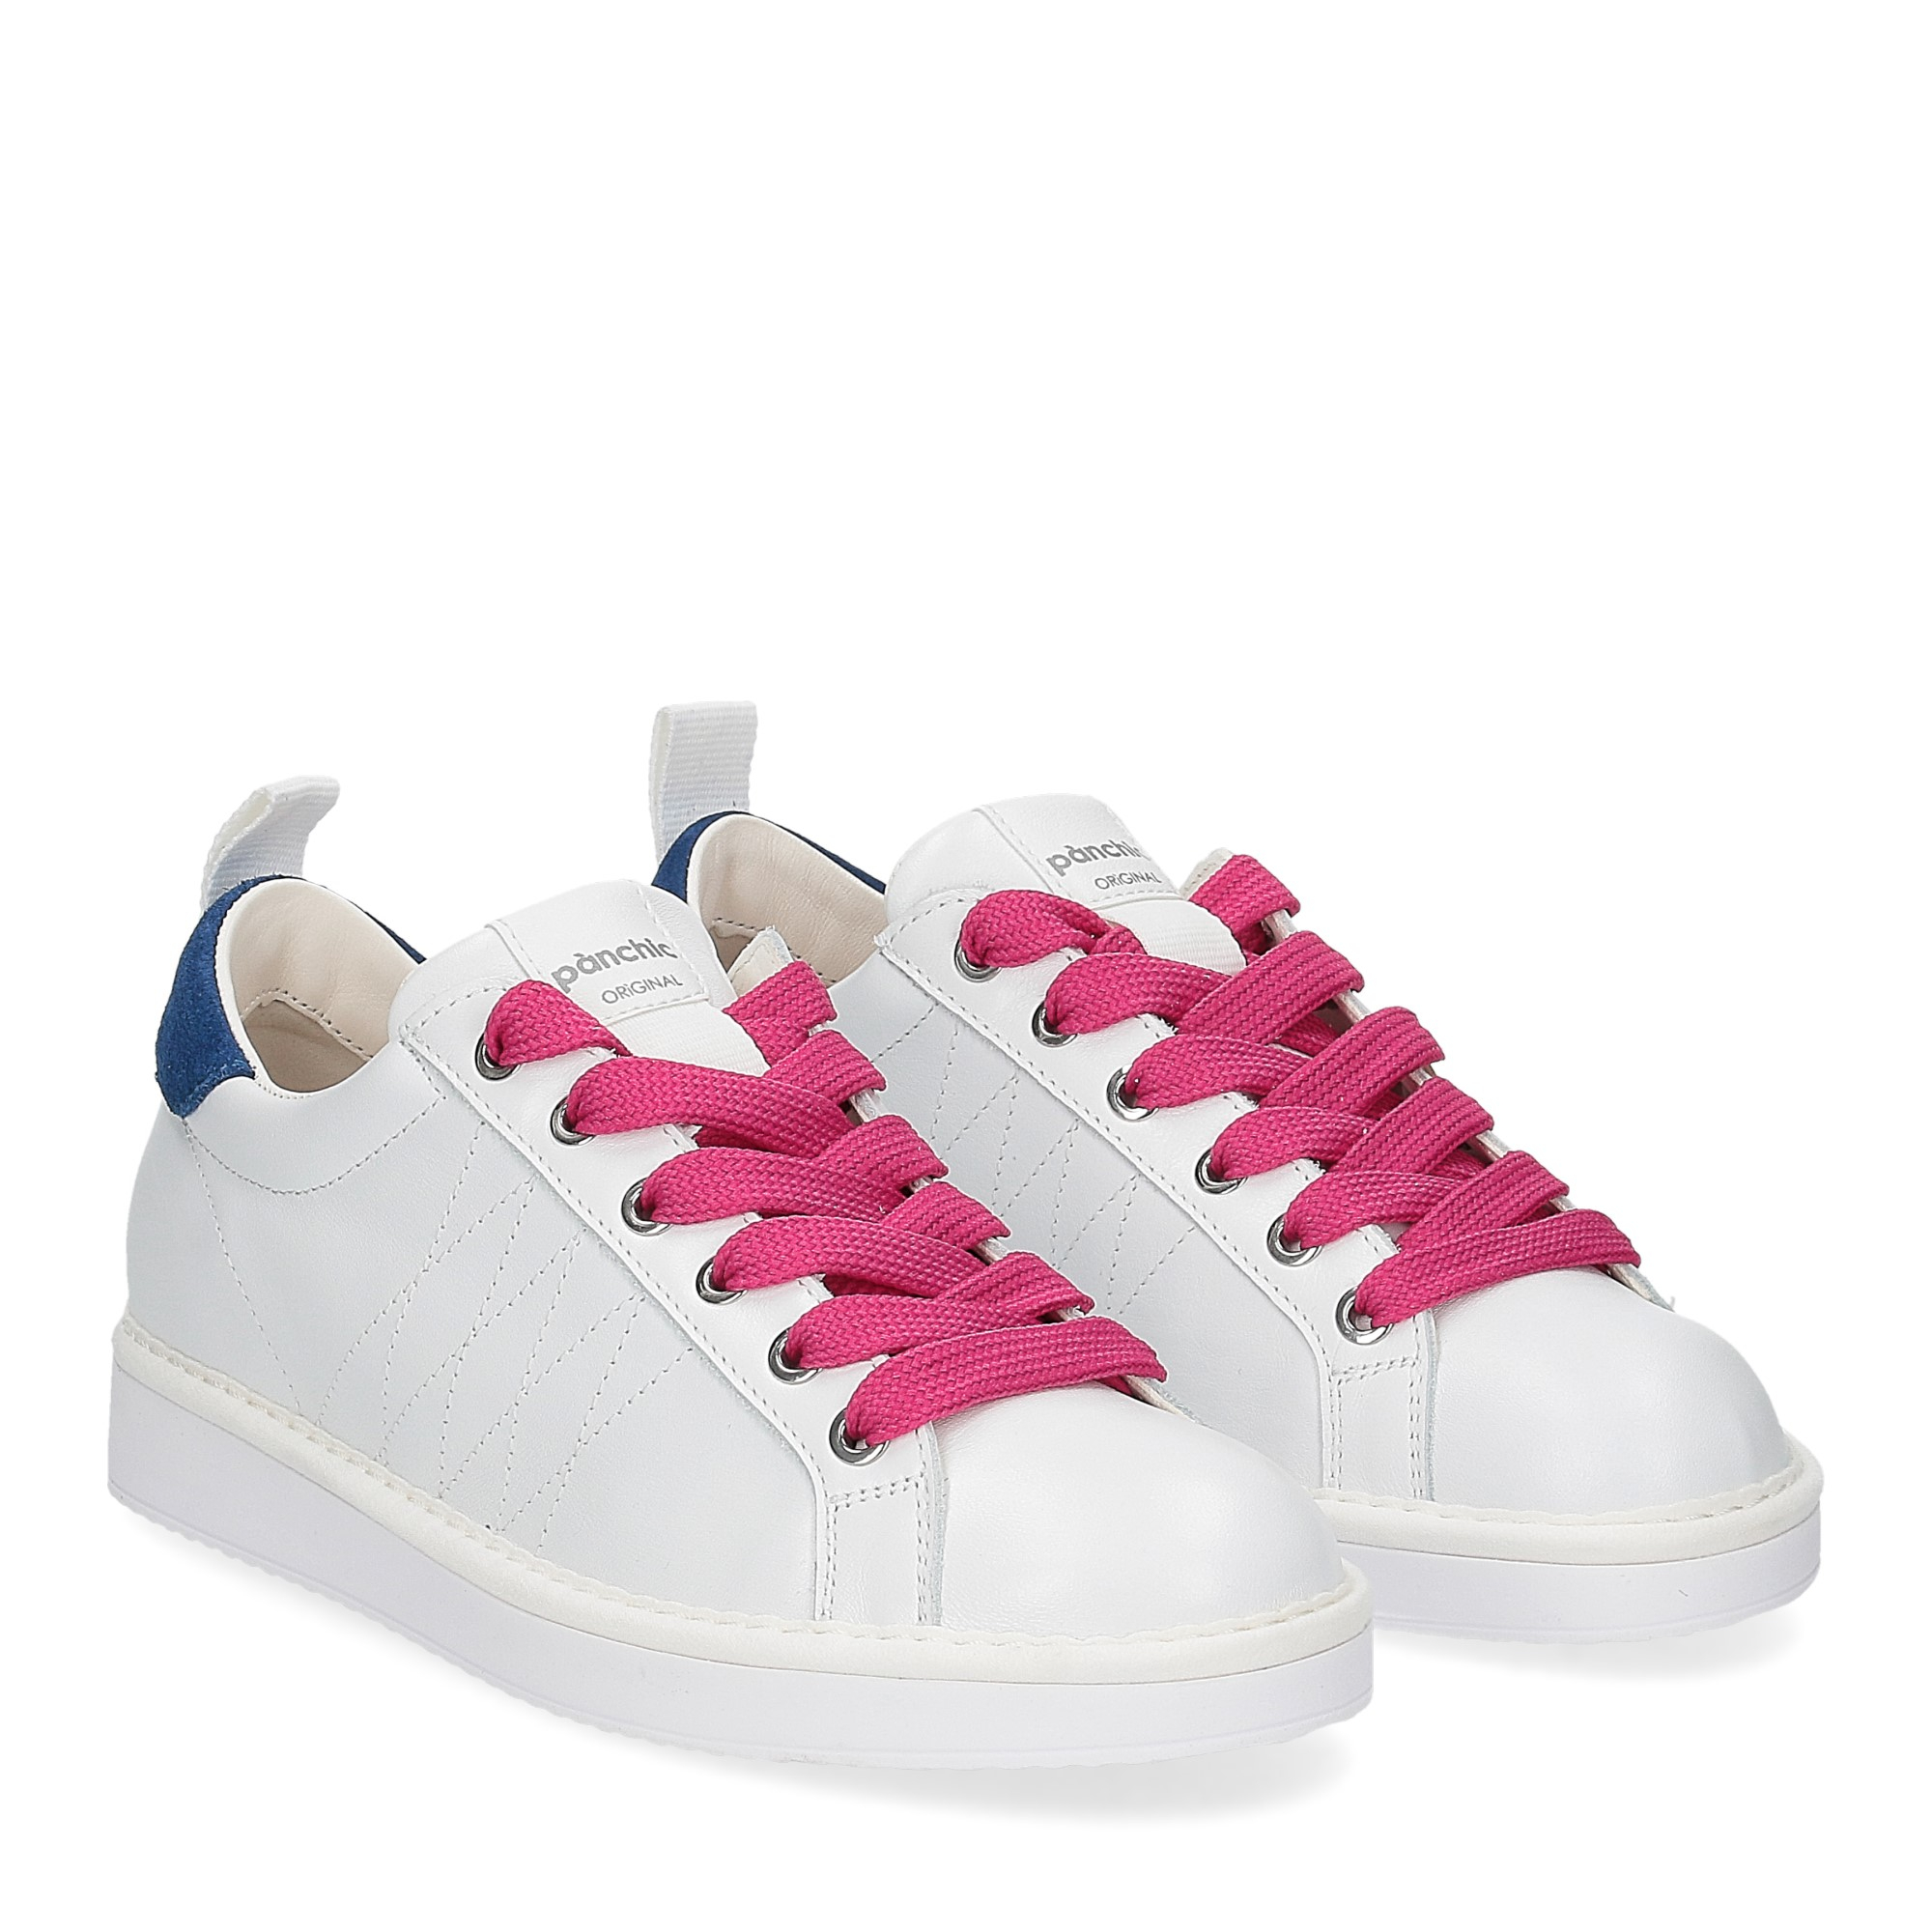 Panchic P01W leather white misterious fuxia